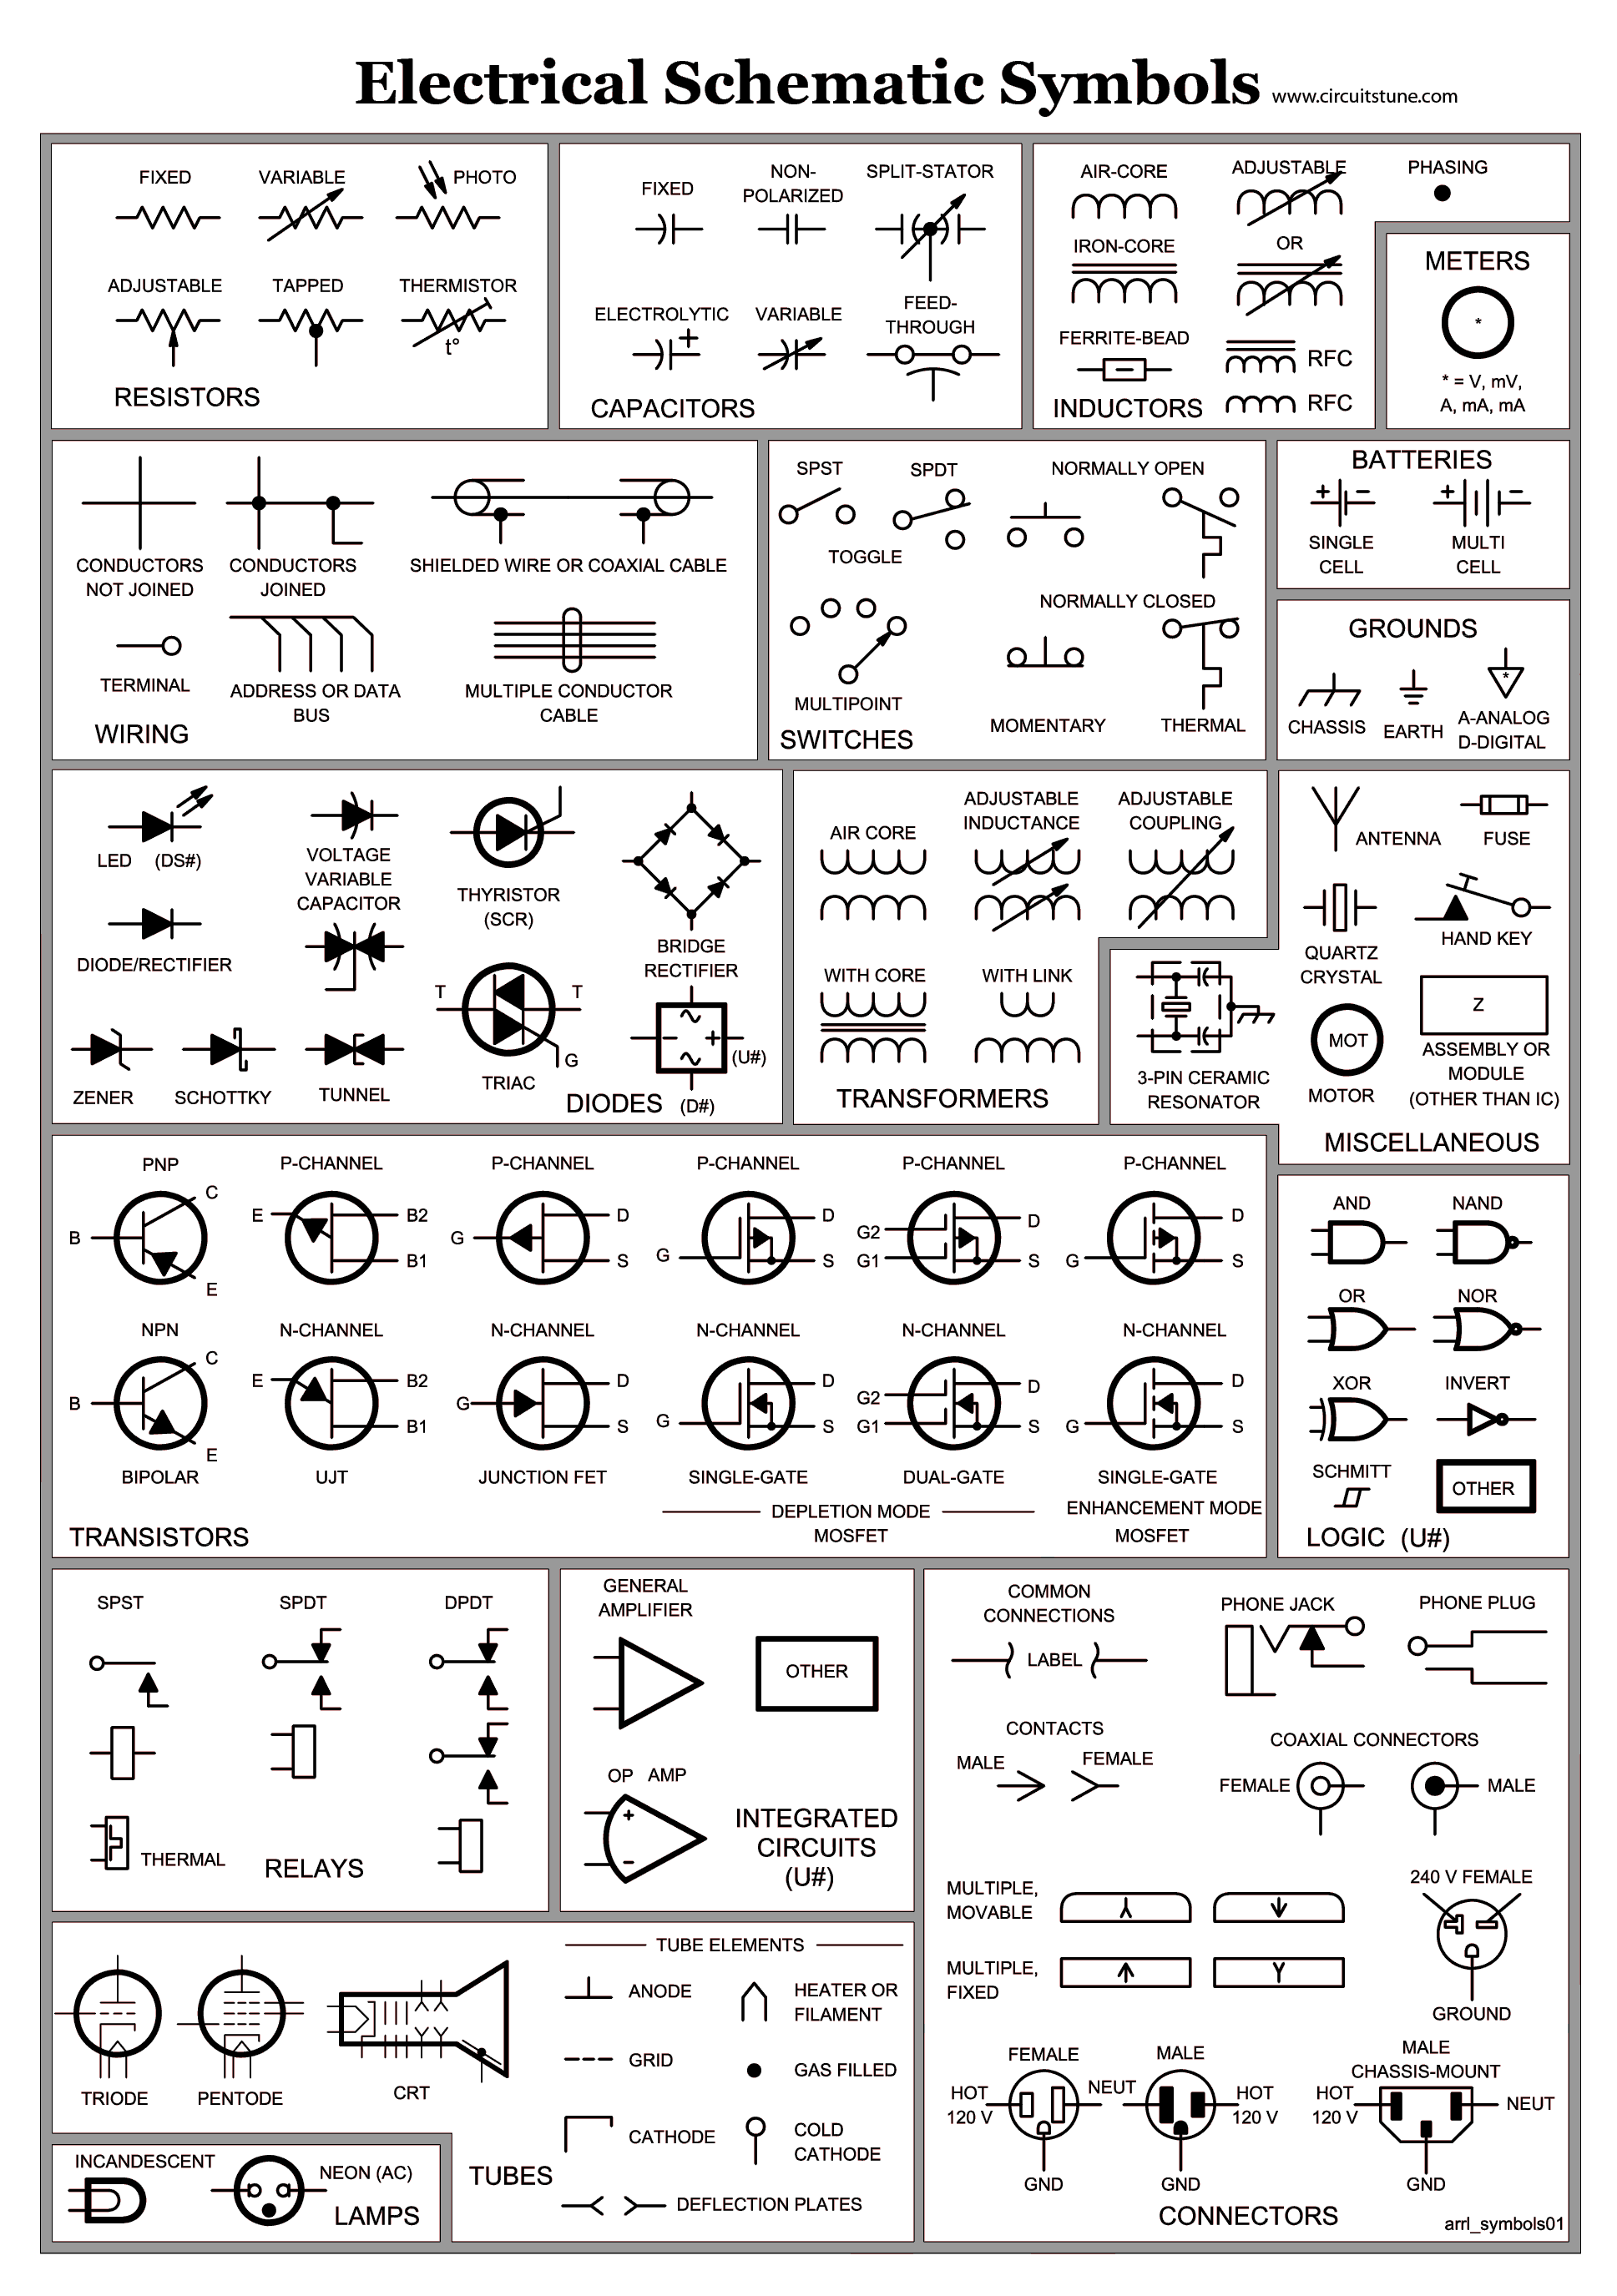 circuit schematic symbols bmet wiki fandom powered by wikia rh bmet wikia com